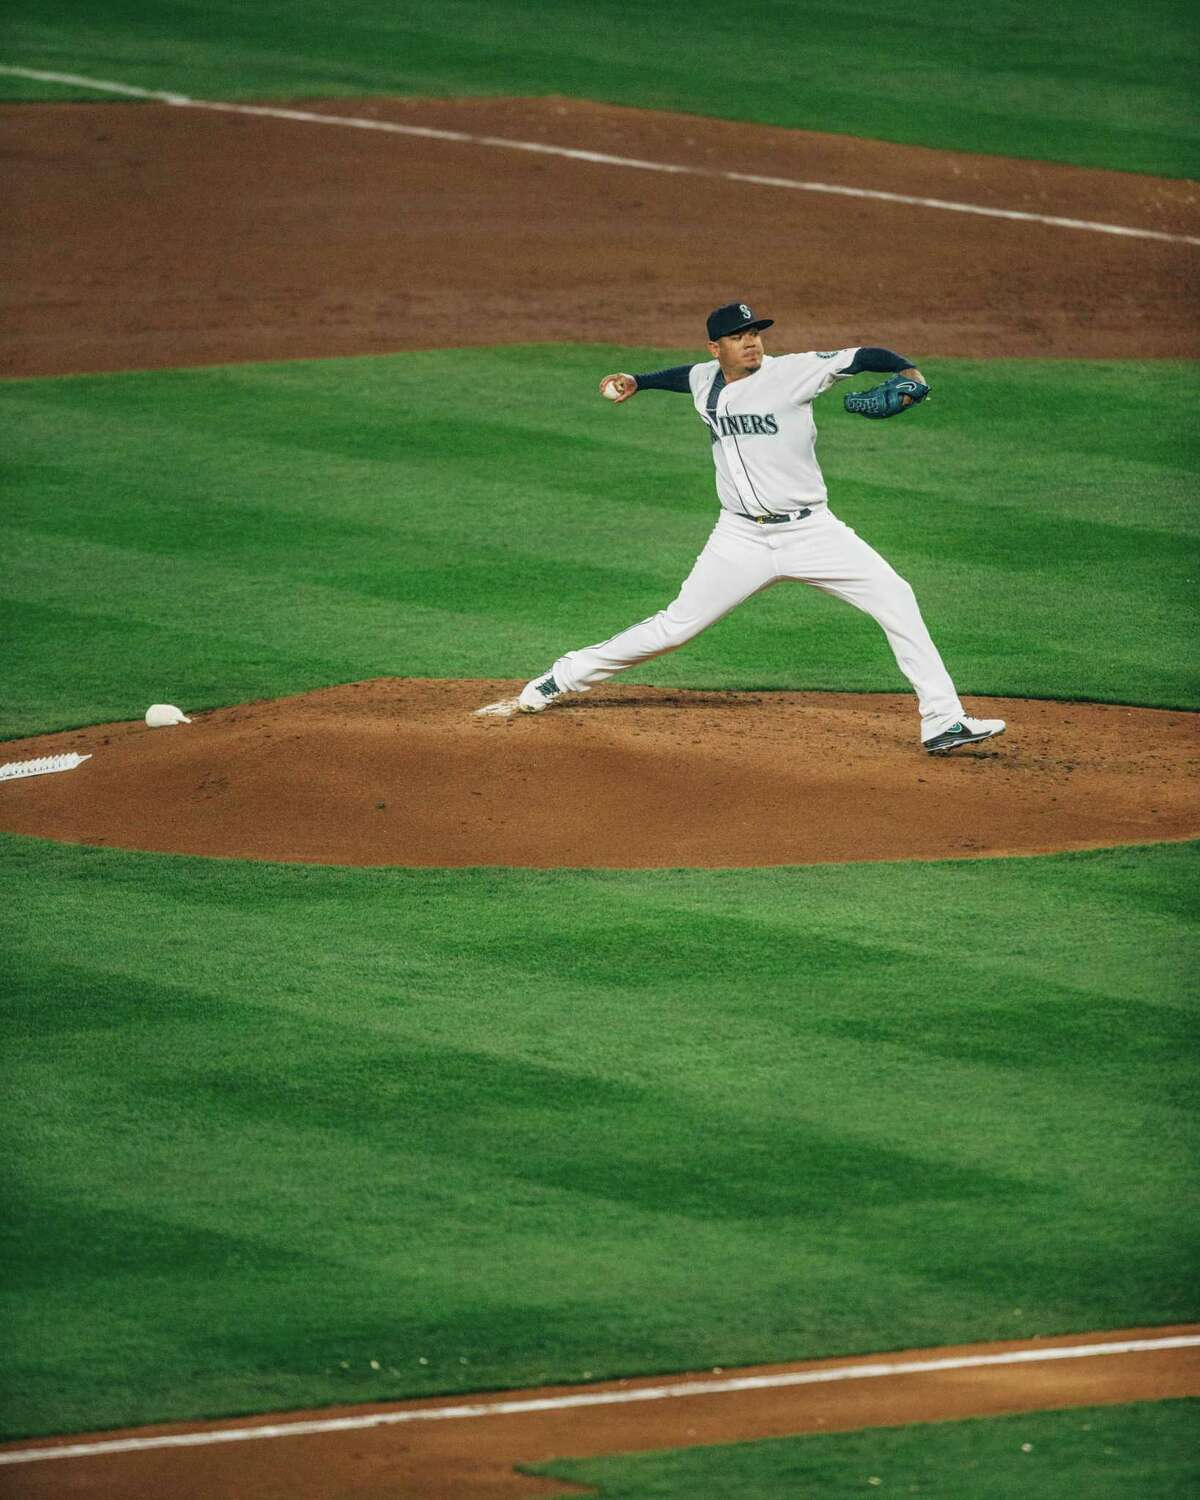 Mariners starting pitcher Felix Hernandez throws a pitch.